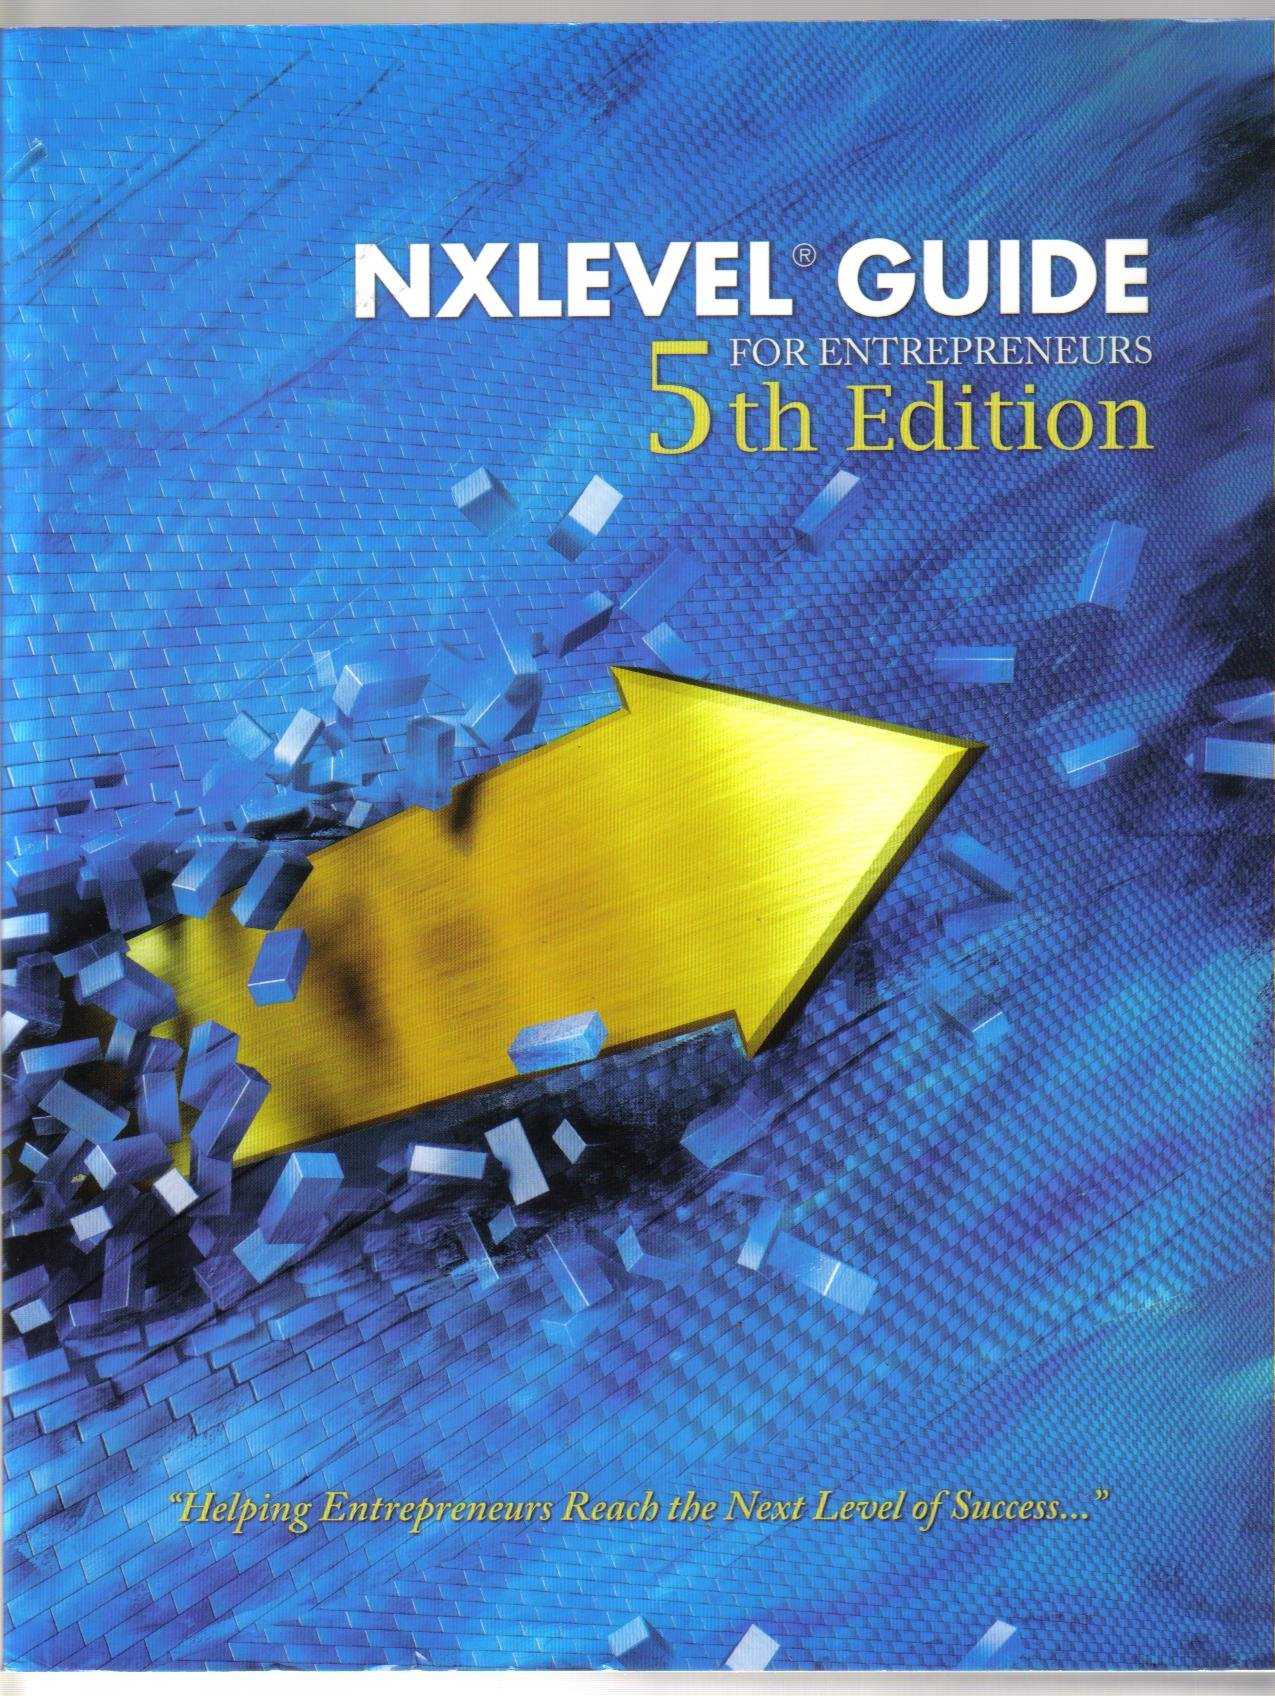 NX Level Guide for Entrepreneurs 5th Edition, Wold -Editor